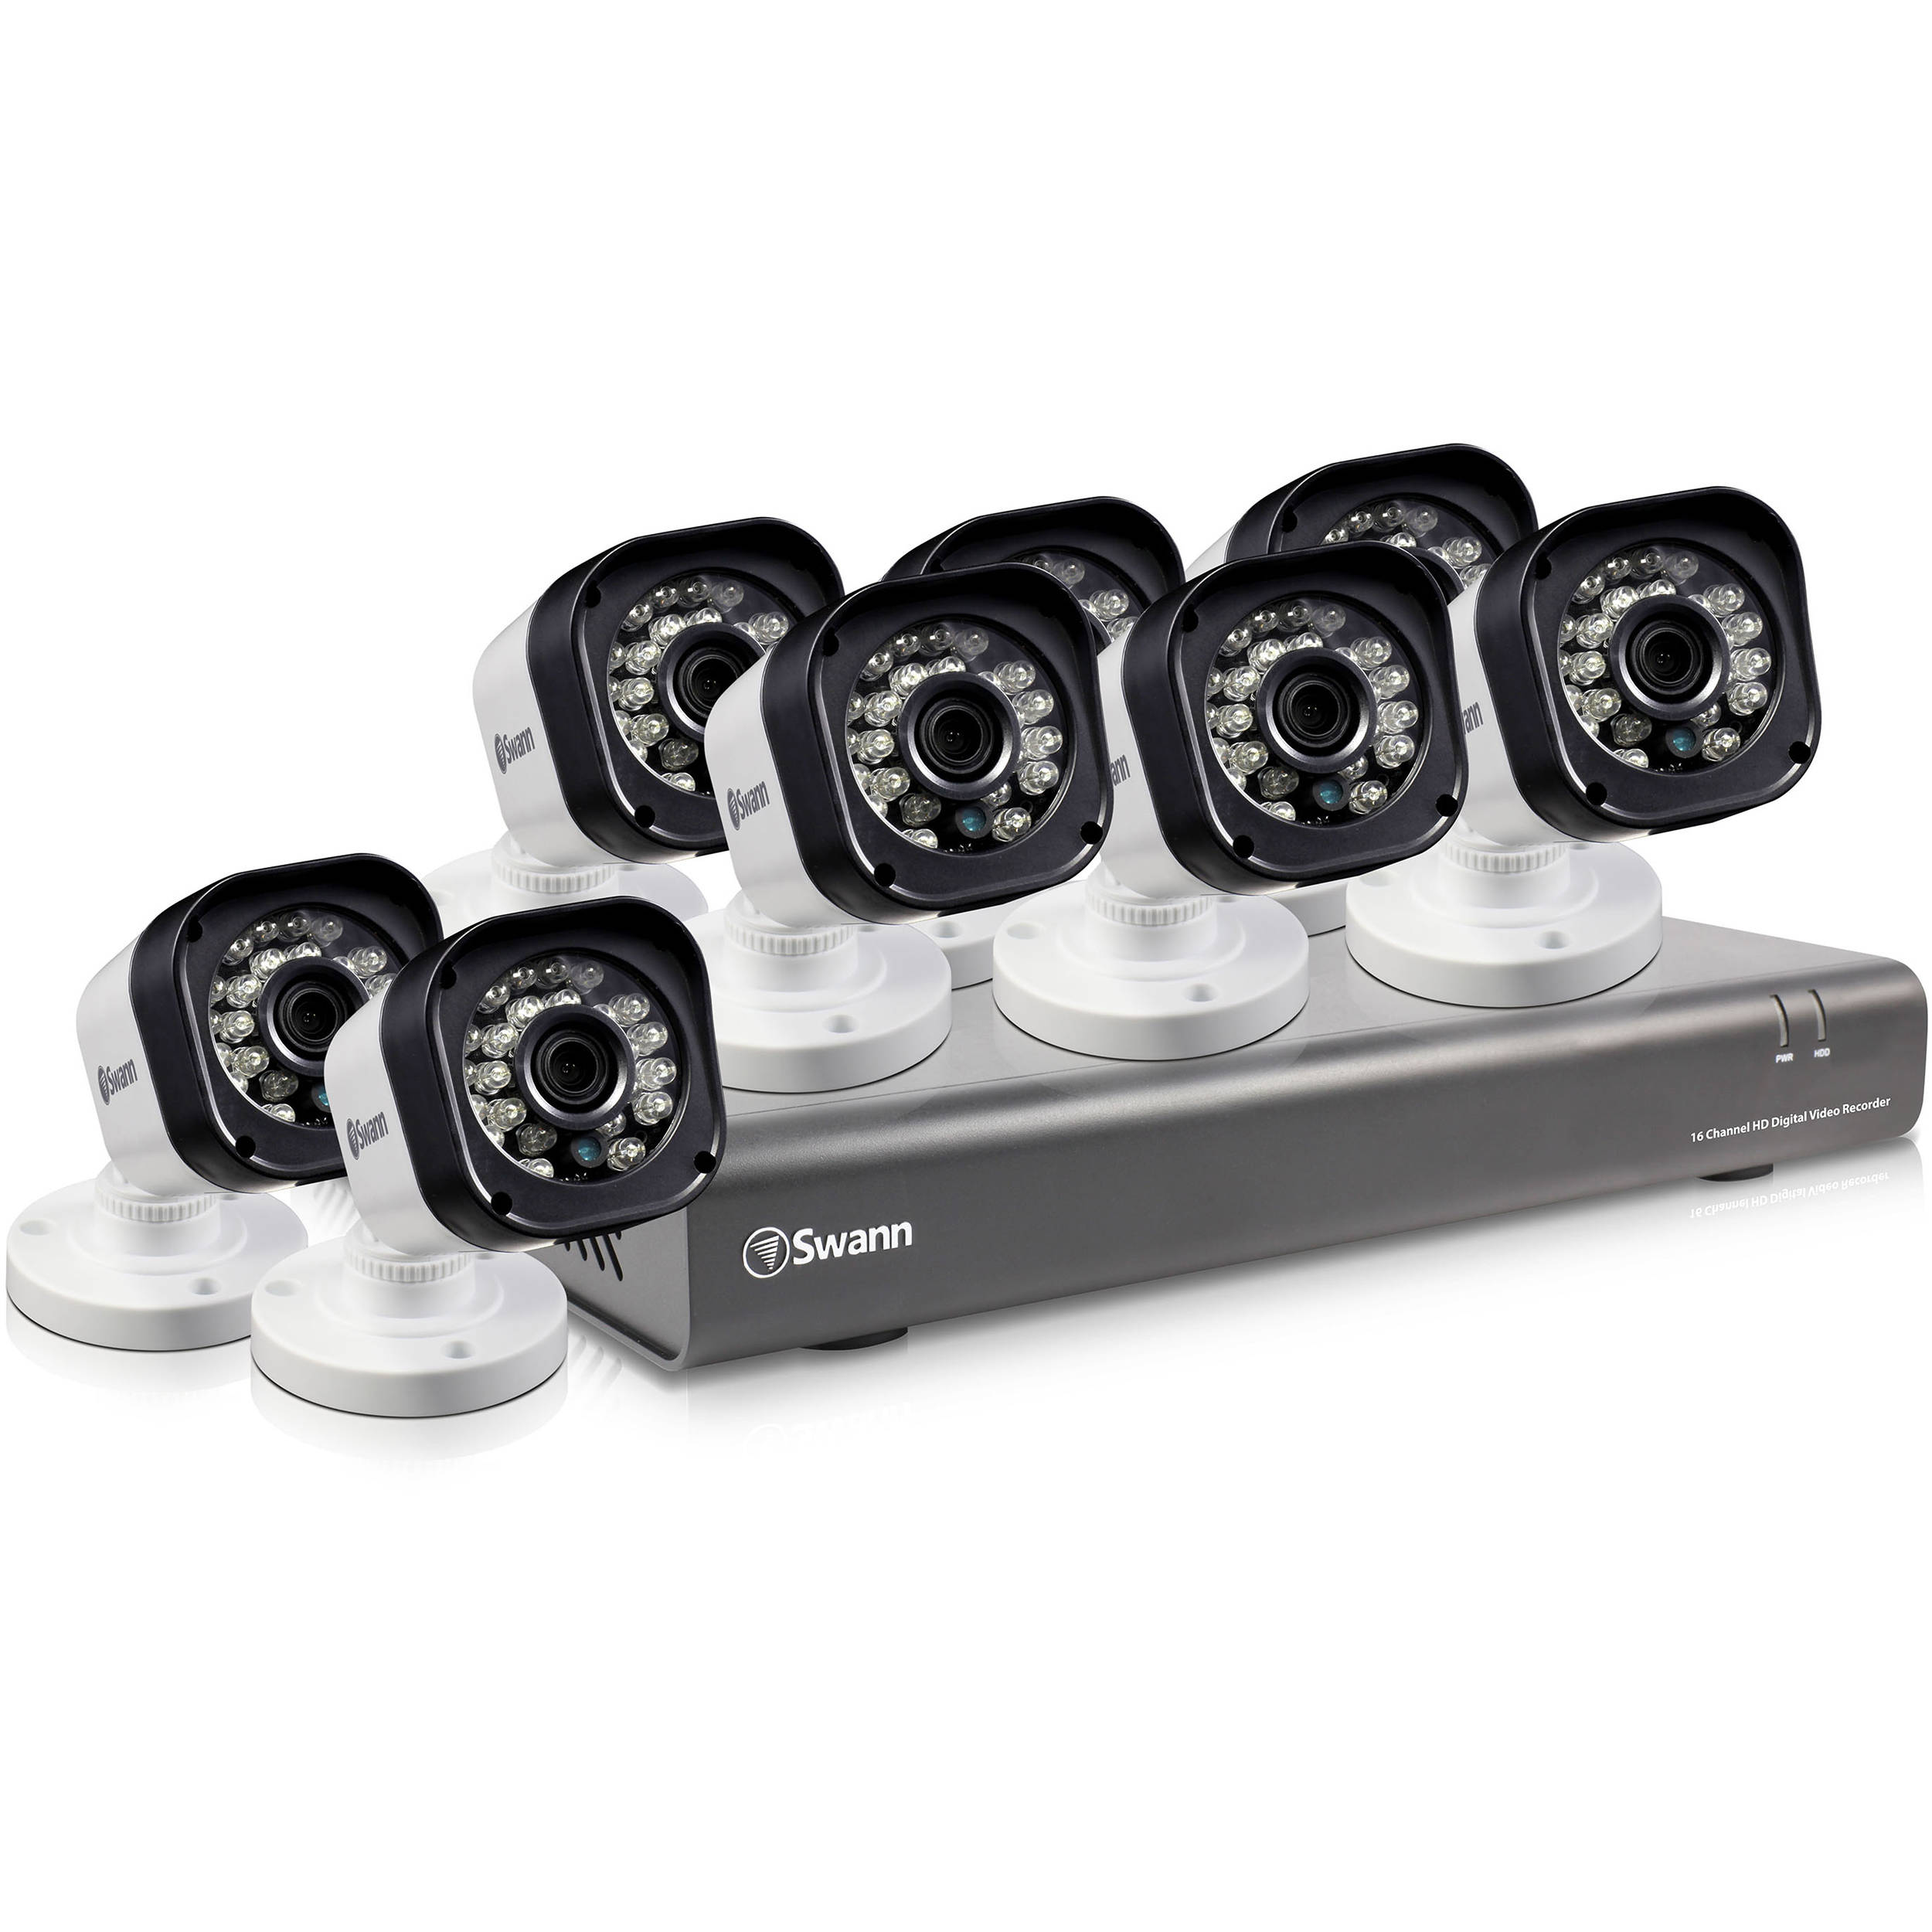 Swann 16 Channel 720p Dvr With 500gb Hdd And 8 Swdvk 167208 Us